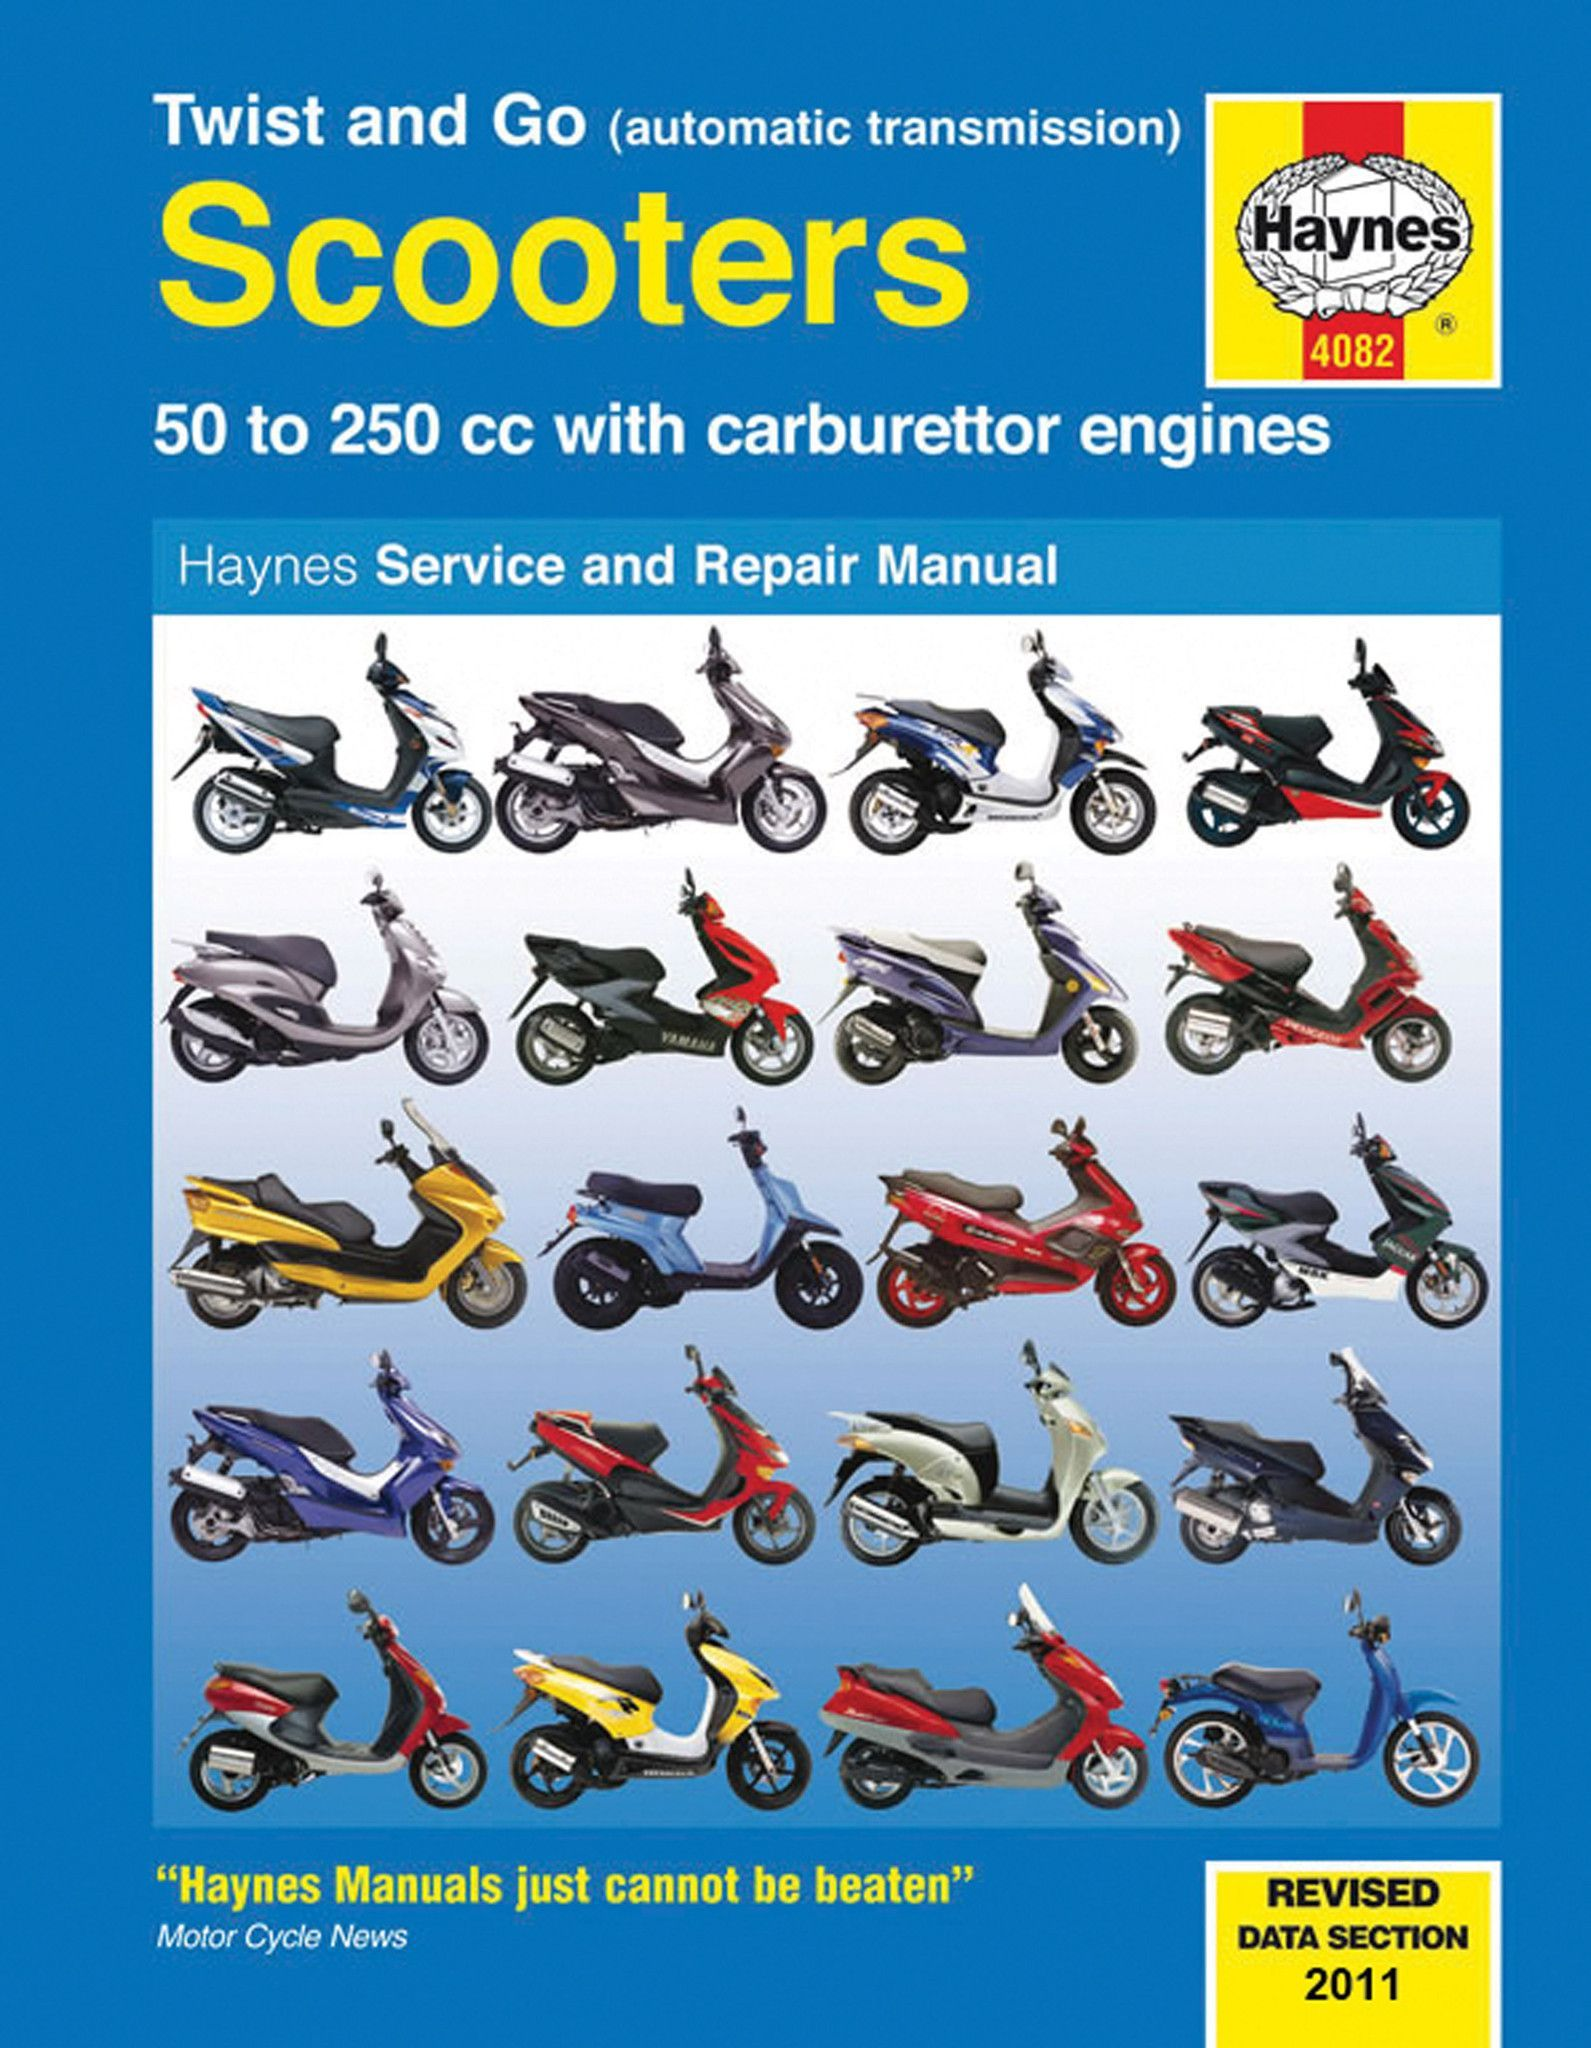 Haynes M4082 Repair Manual for Twist and Go (automatic transmission)  Scooters 50 to 250 cc engines